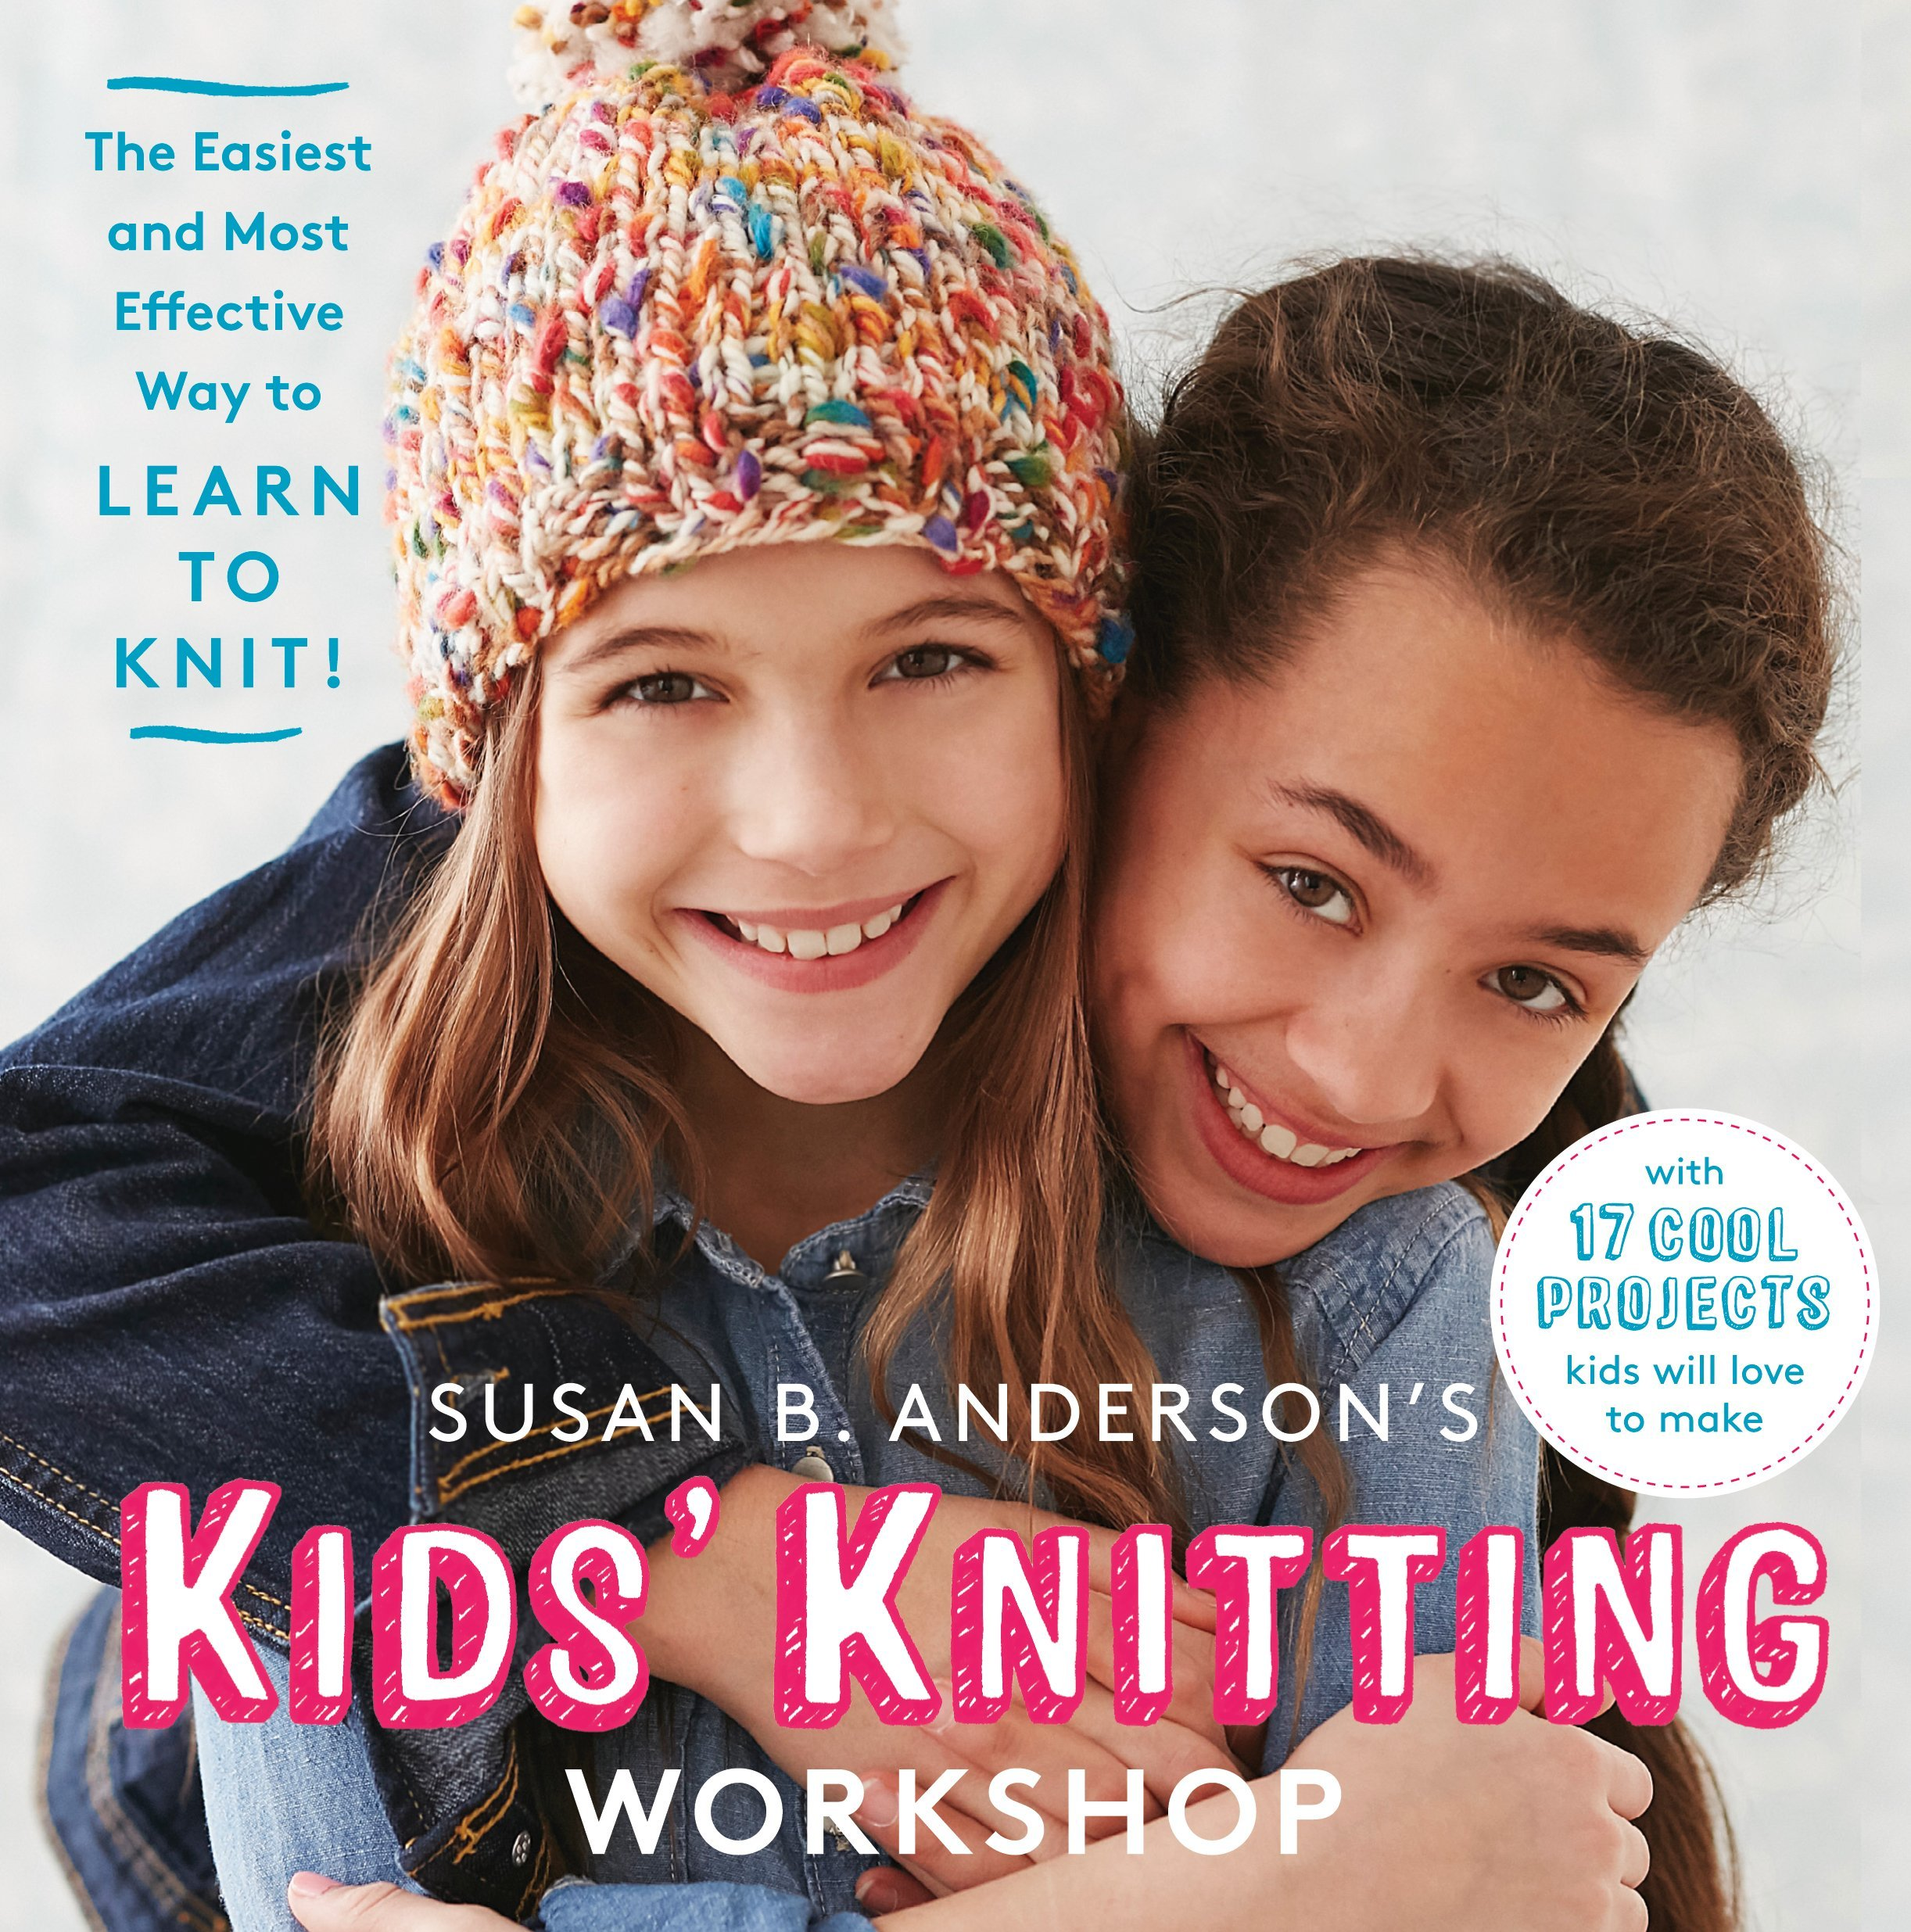 susan-b-anderson-s-kids-knitting-workshop-the-easiest-and-most-effective-way-to-learn-to-knit